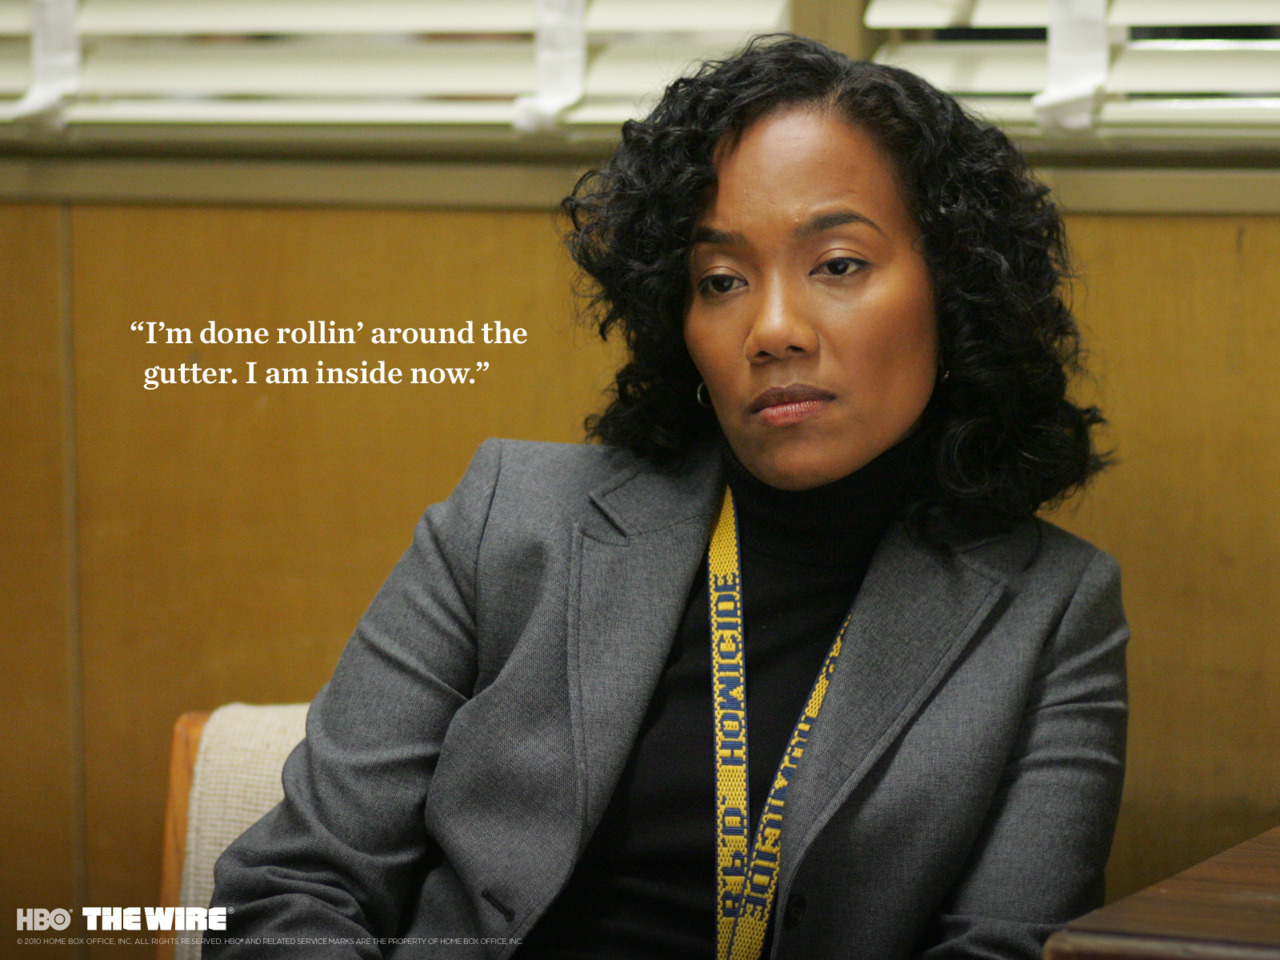 nprfreshair:  On the HBO series The Wire, Sonja Sohn played a police detective in an East Baltimore neighborhood taken over by drug gangs. After the show ended, she stayed in Baltimore and started a non-profit called ReWired For Change aimed at at-risk teenagers. Tomorrow, she'll explain why she made the switch.